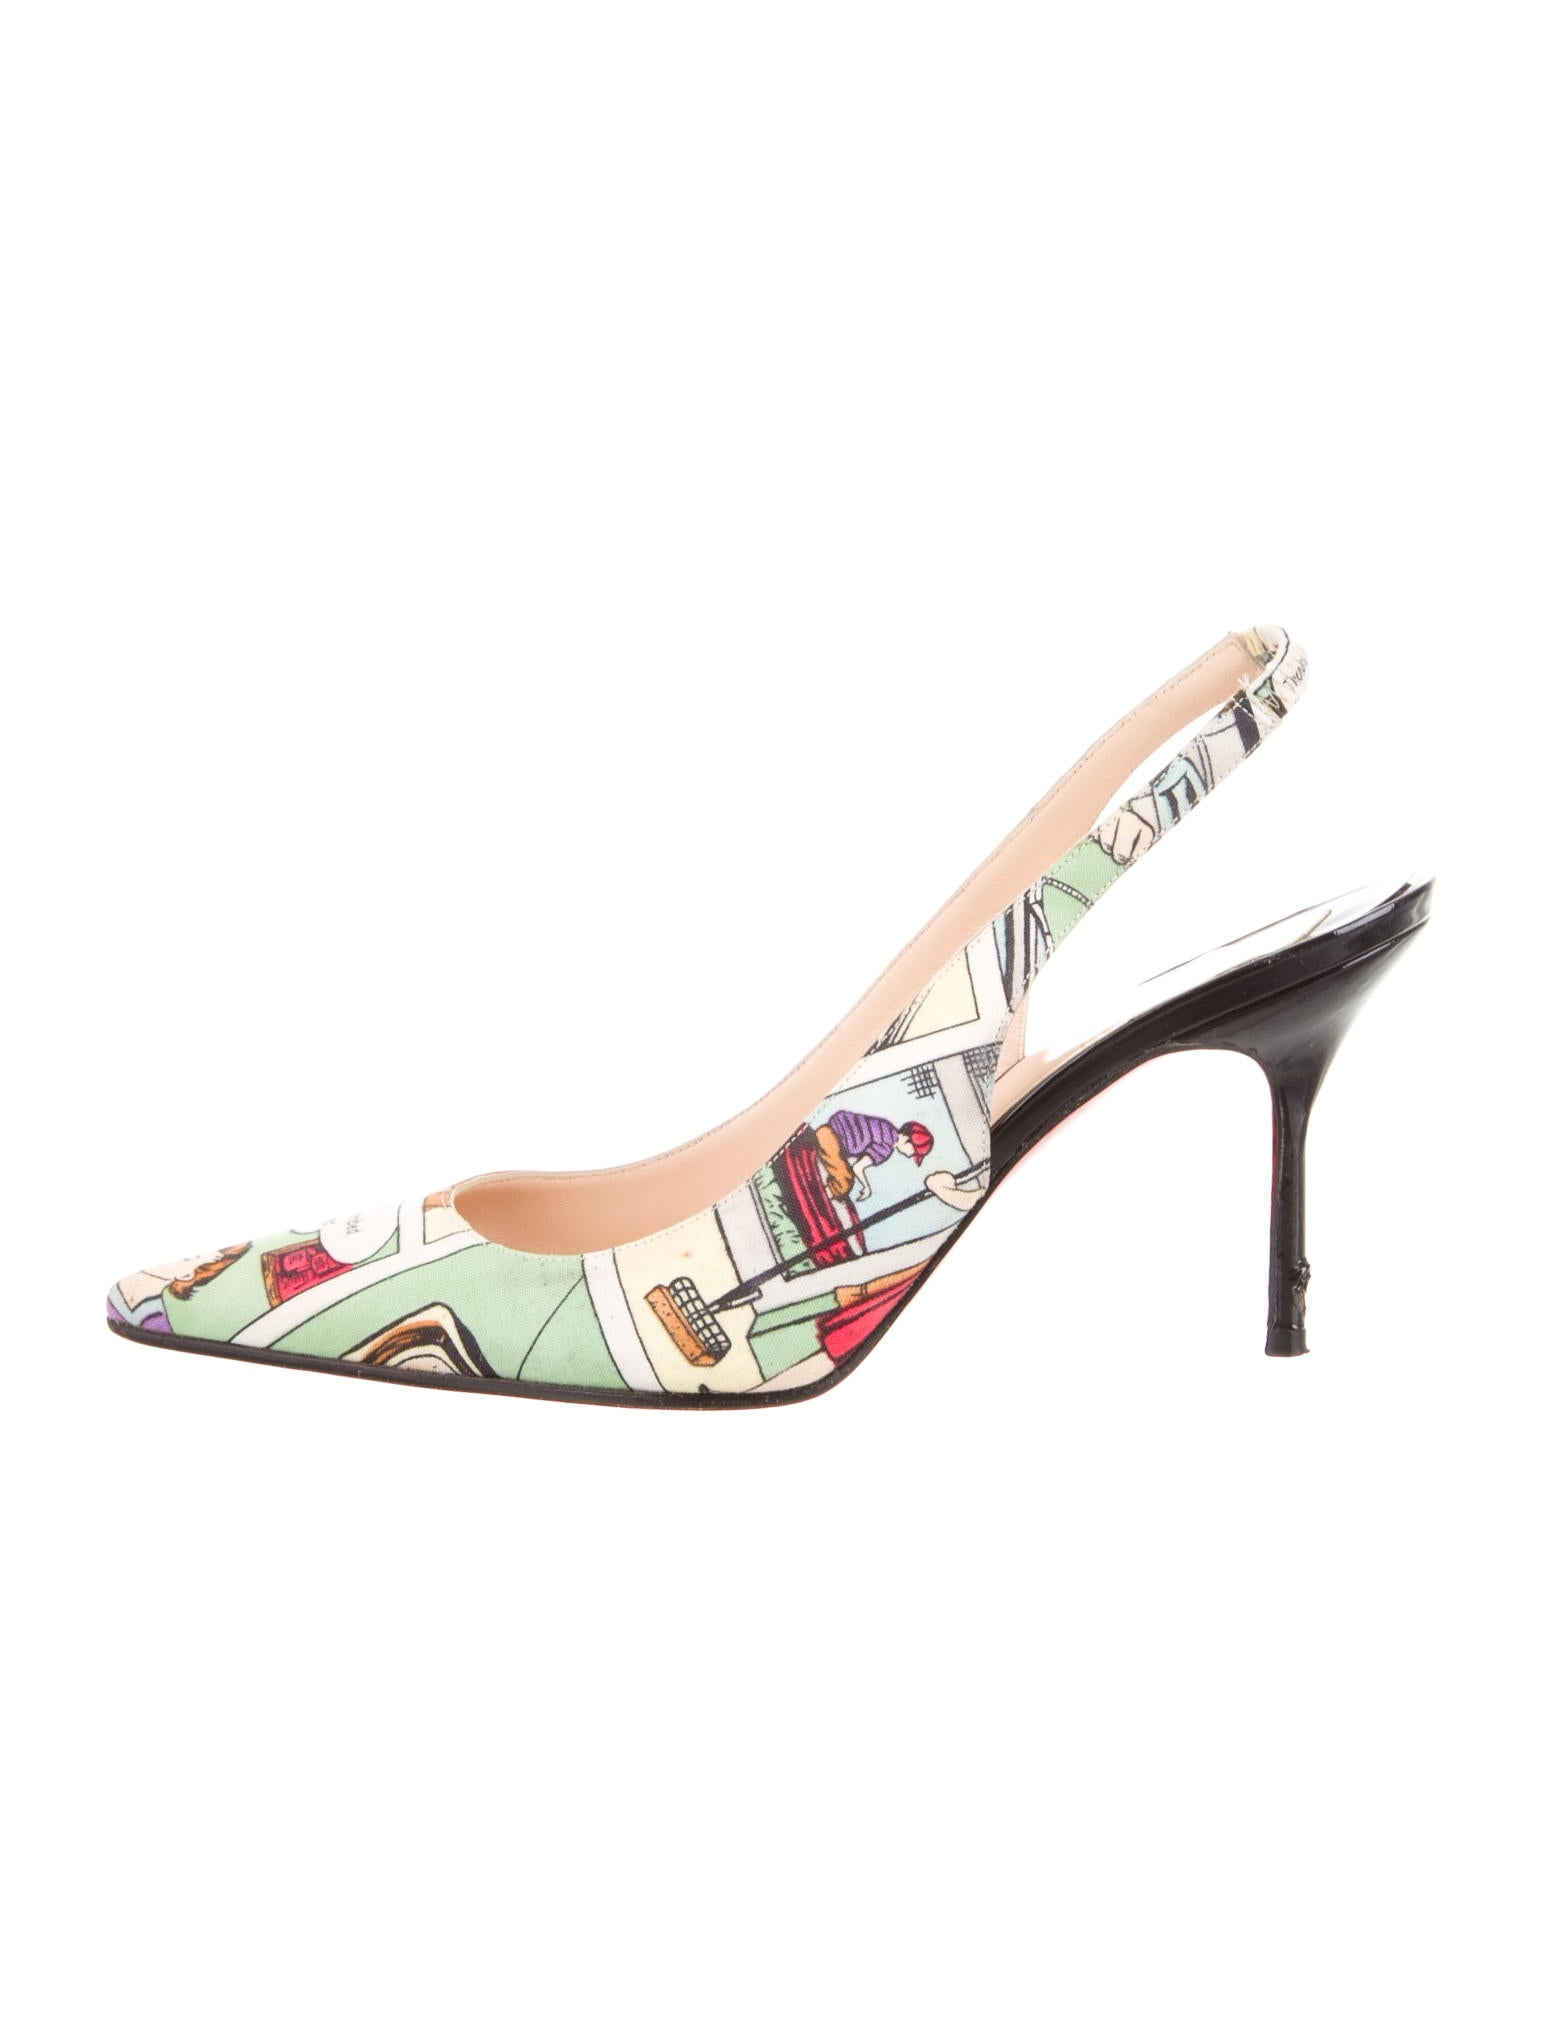 christian louboutin comic strip pointed-toe pumps Multicolor ...